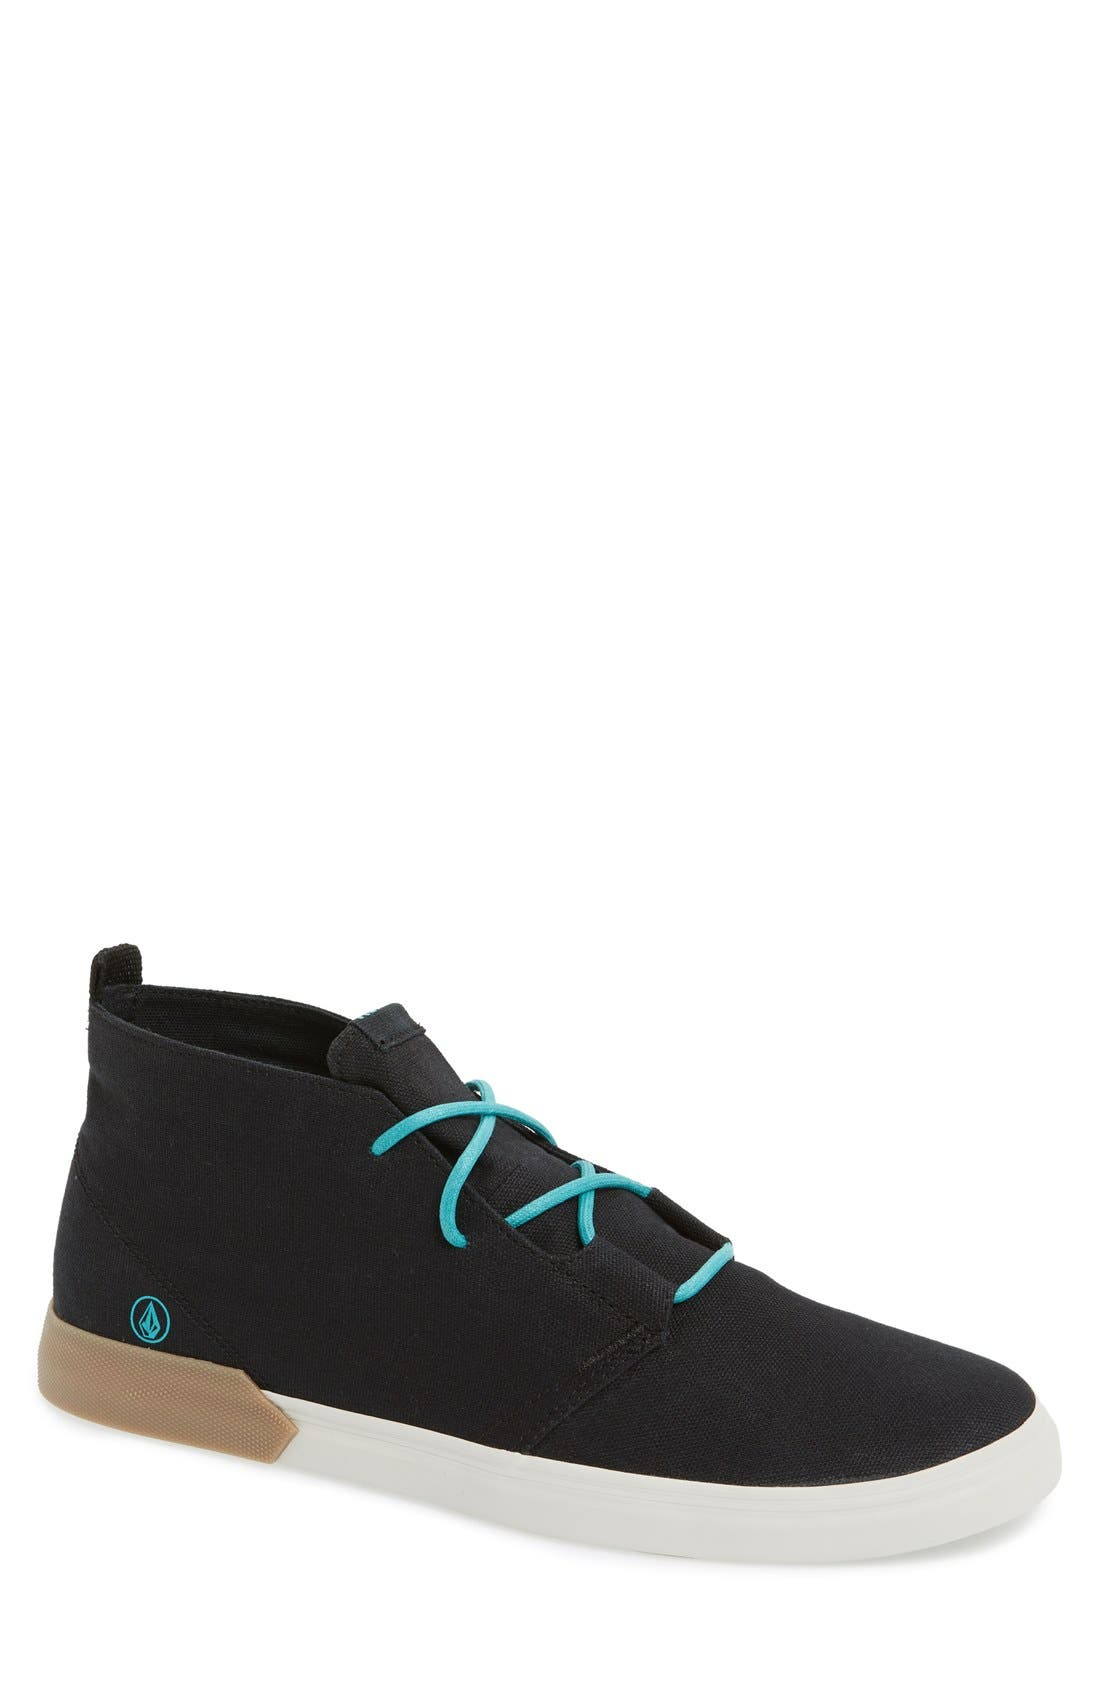 Alternate Image 1 Selected - Volcom 'De Fray' High Top Sneaker